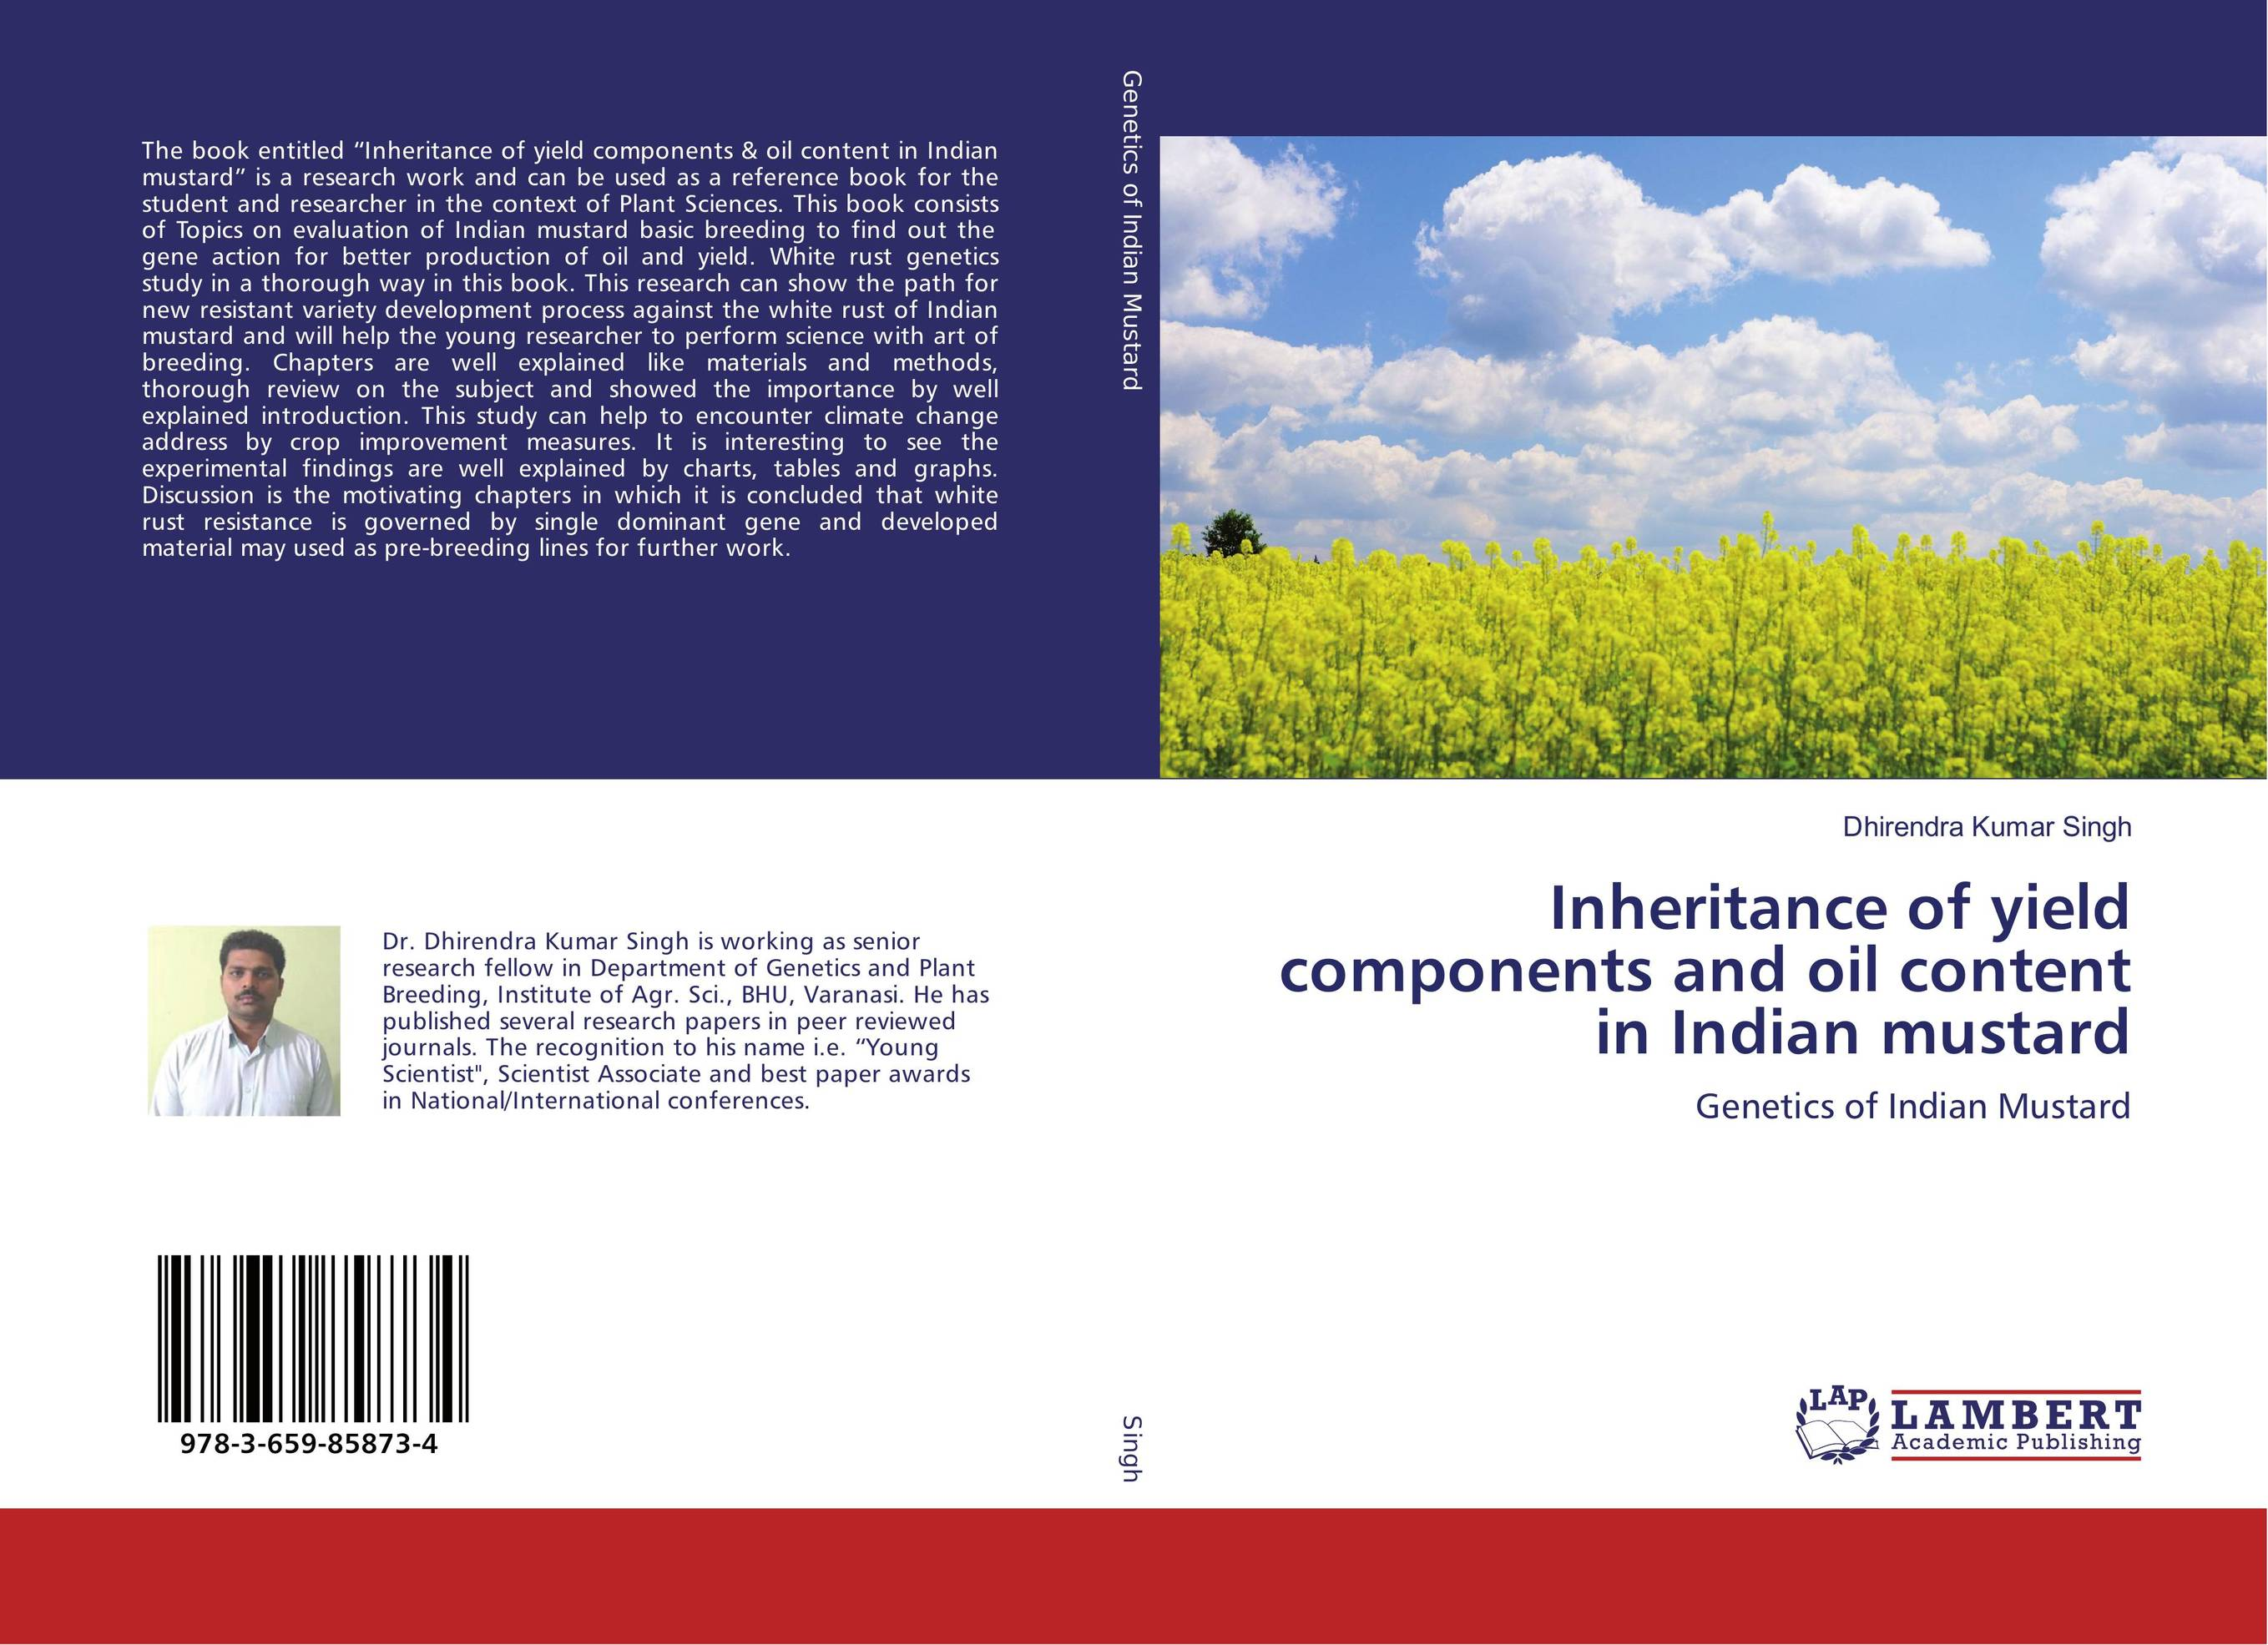 Inheritance of yield components and oil content in Indian mustard nick sharratt caveman dave